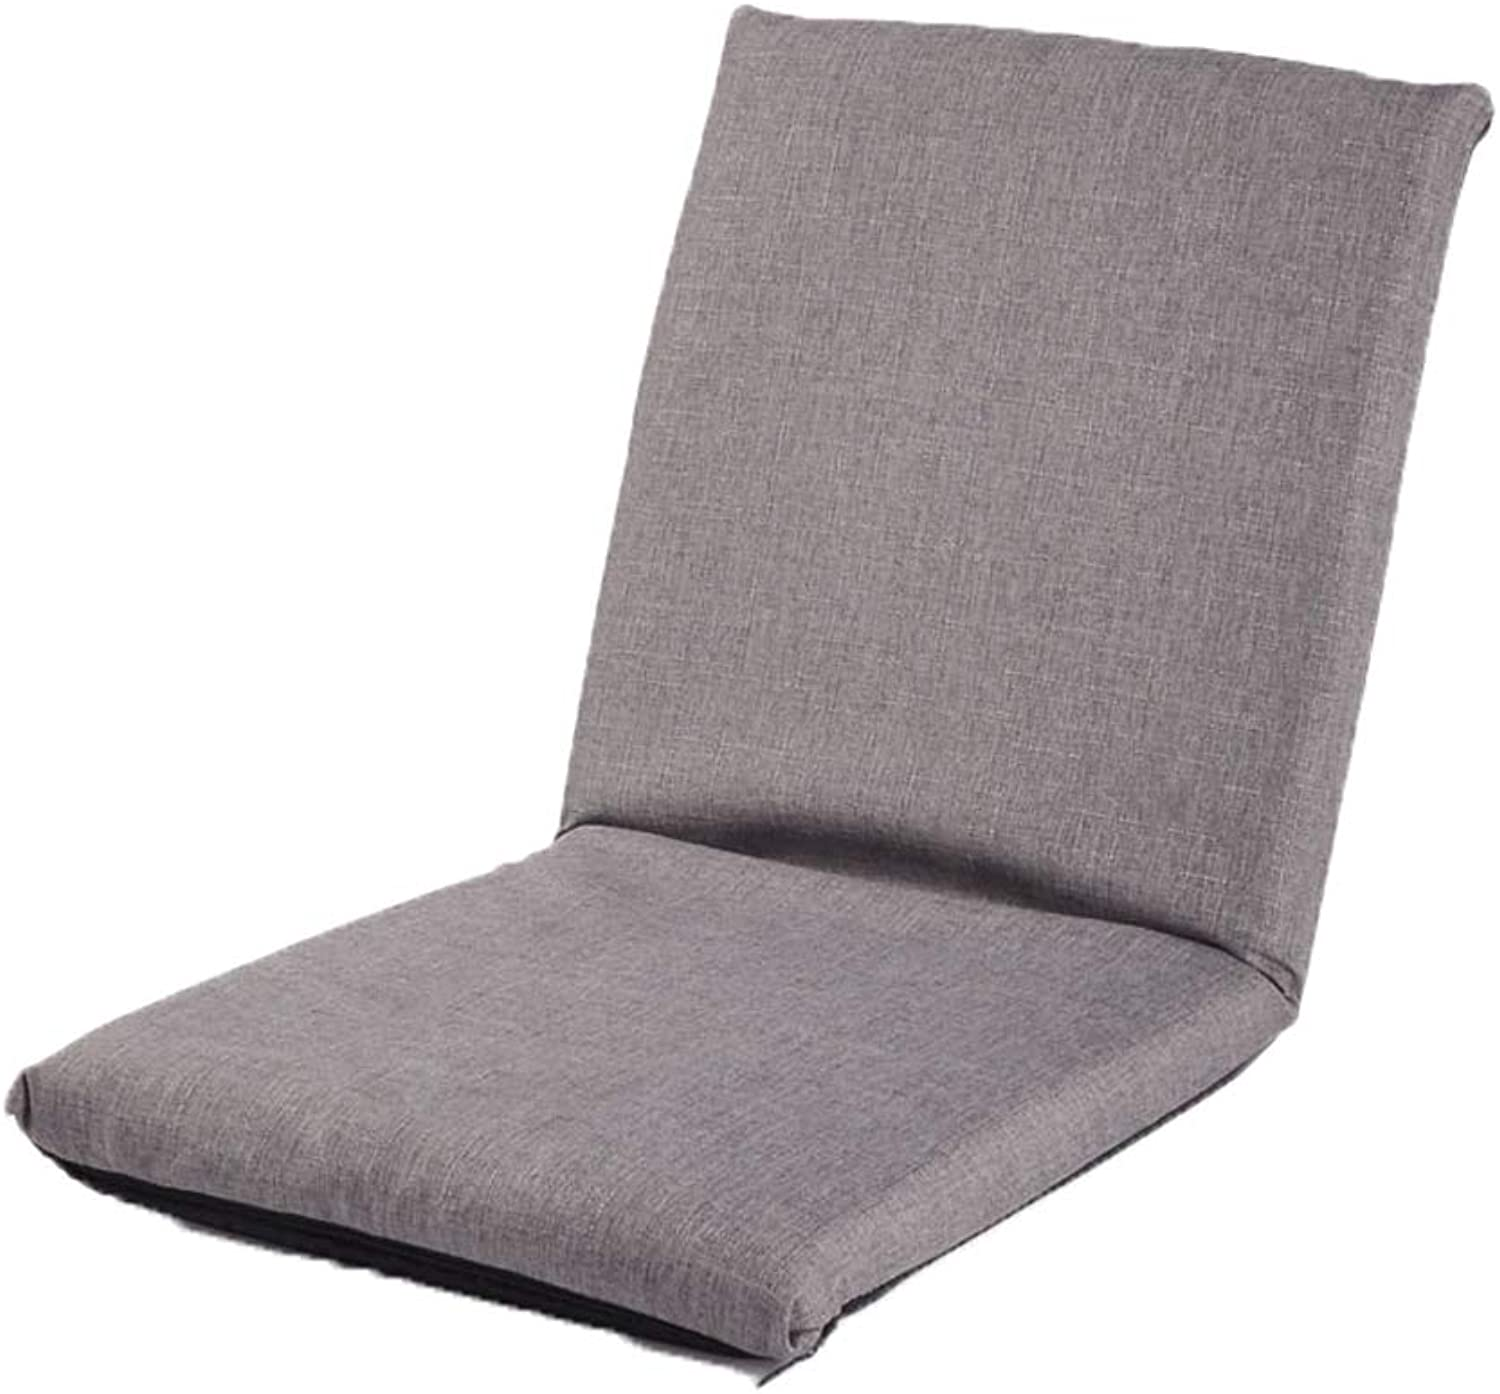 TLTLLRSF Lazy Couch, Tatami Backrest Can Be Folded in The Winter and Summer Dual-use Balcony Bay Window Lounge Chair, Can Be Used for Meditation Reading Newspaper, Multi-color Optional